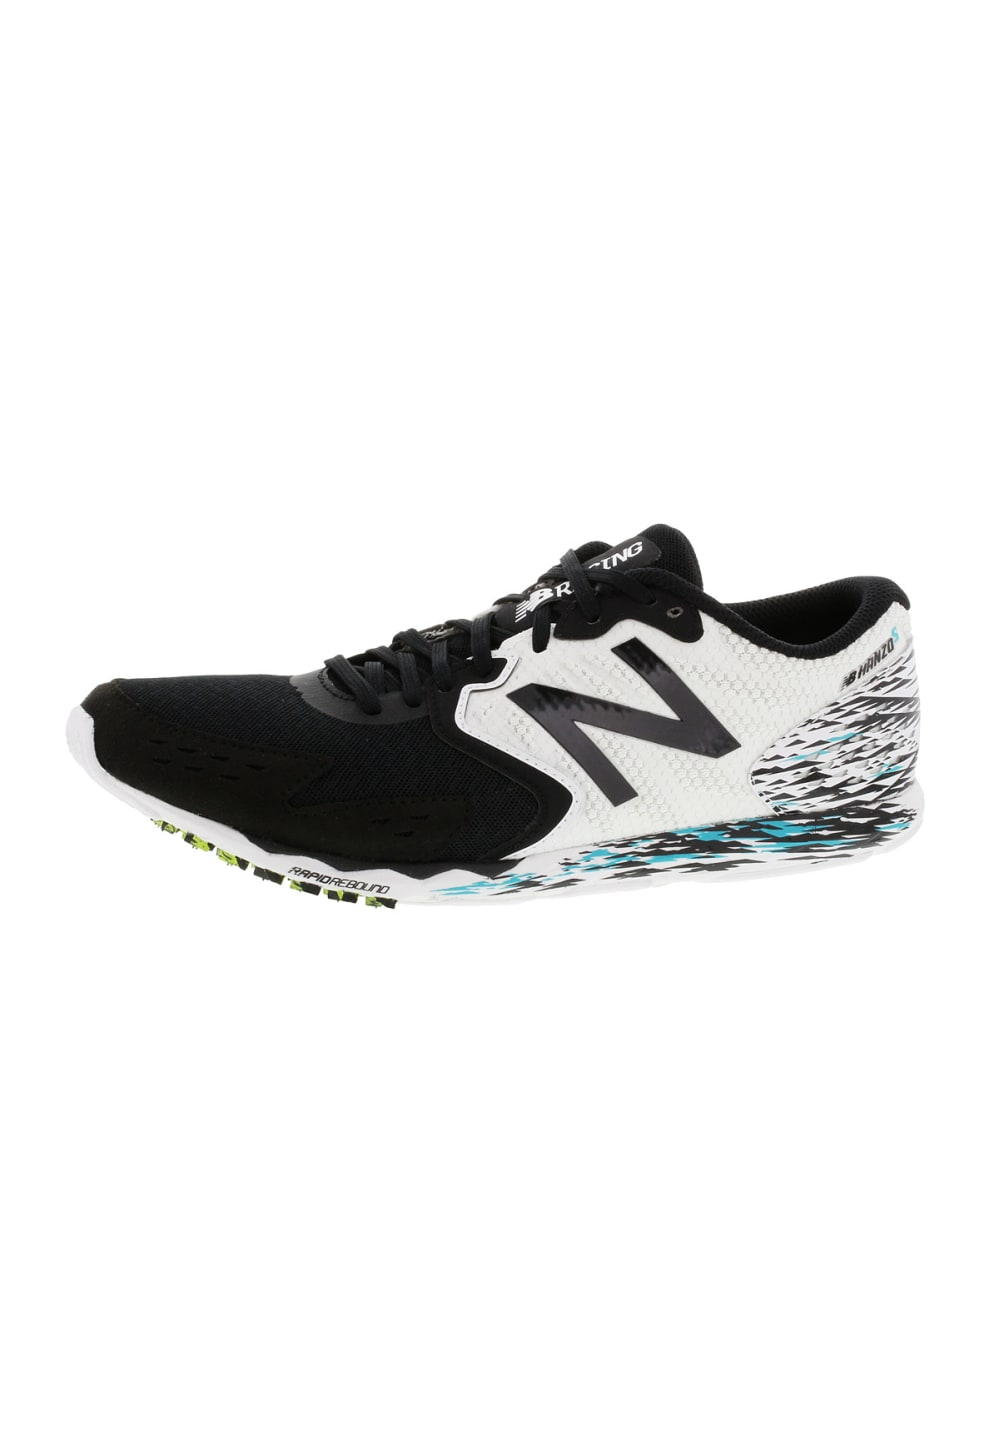 aab533faeaf New Balance Hanzo - Running shoes for Men - Black | 21RUN